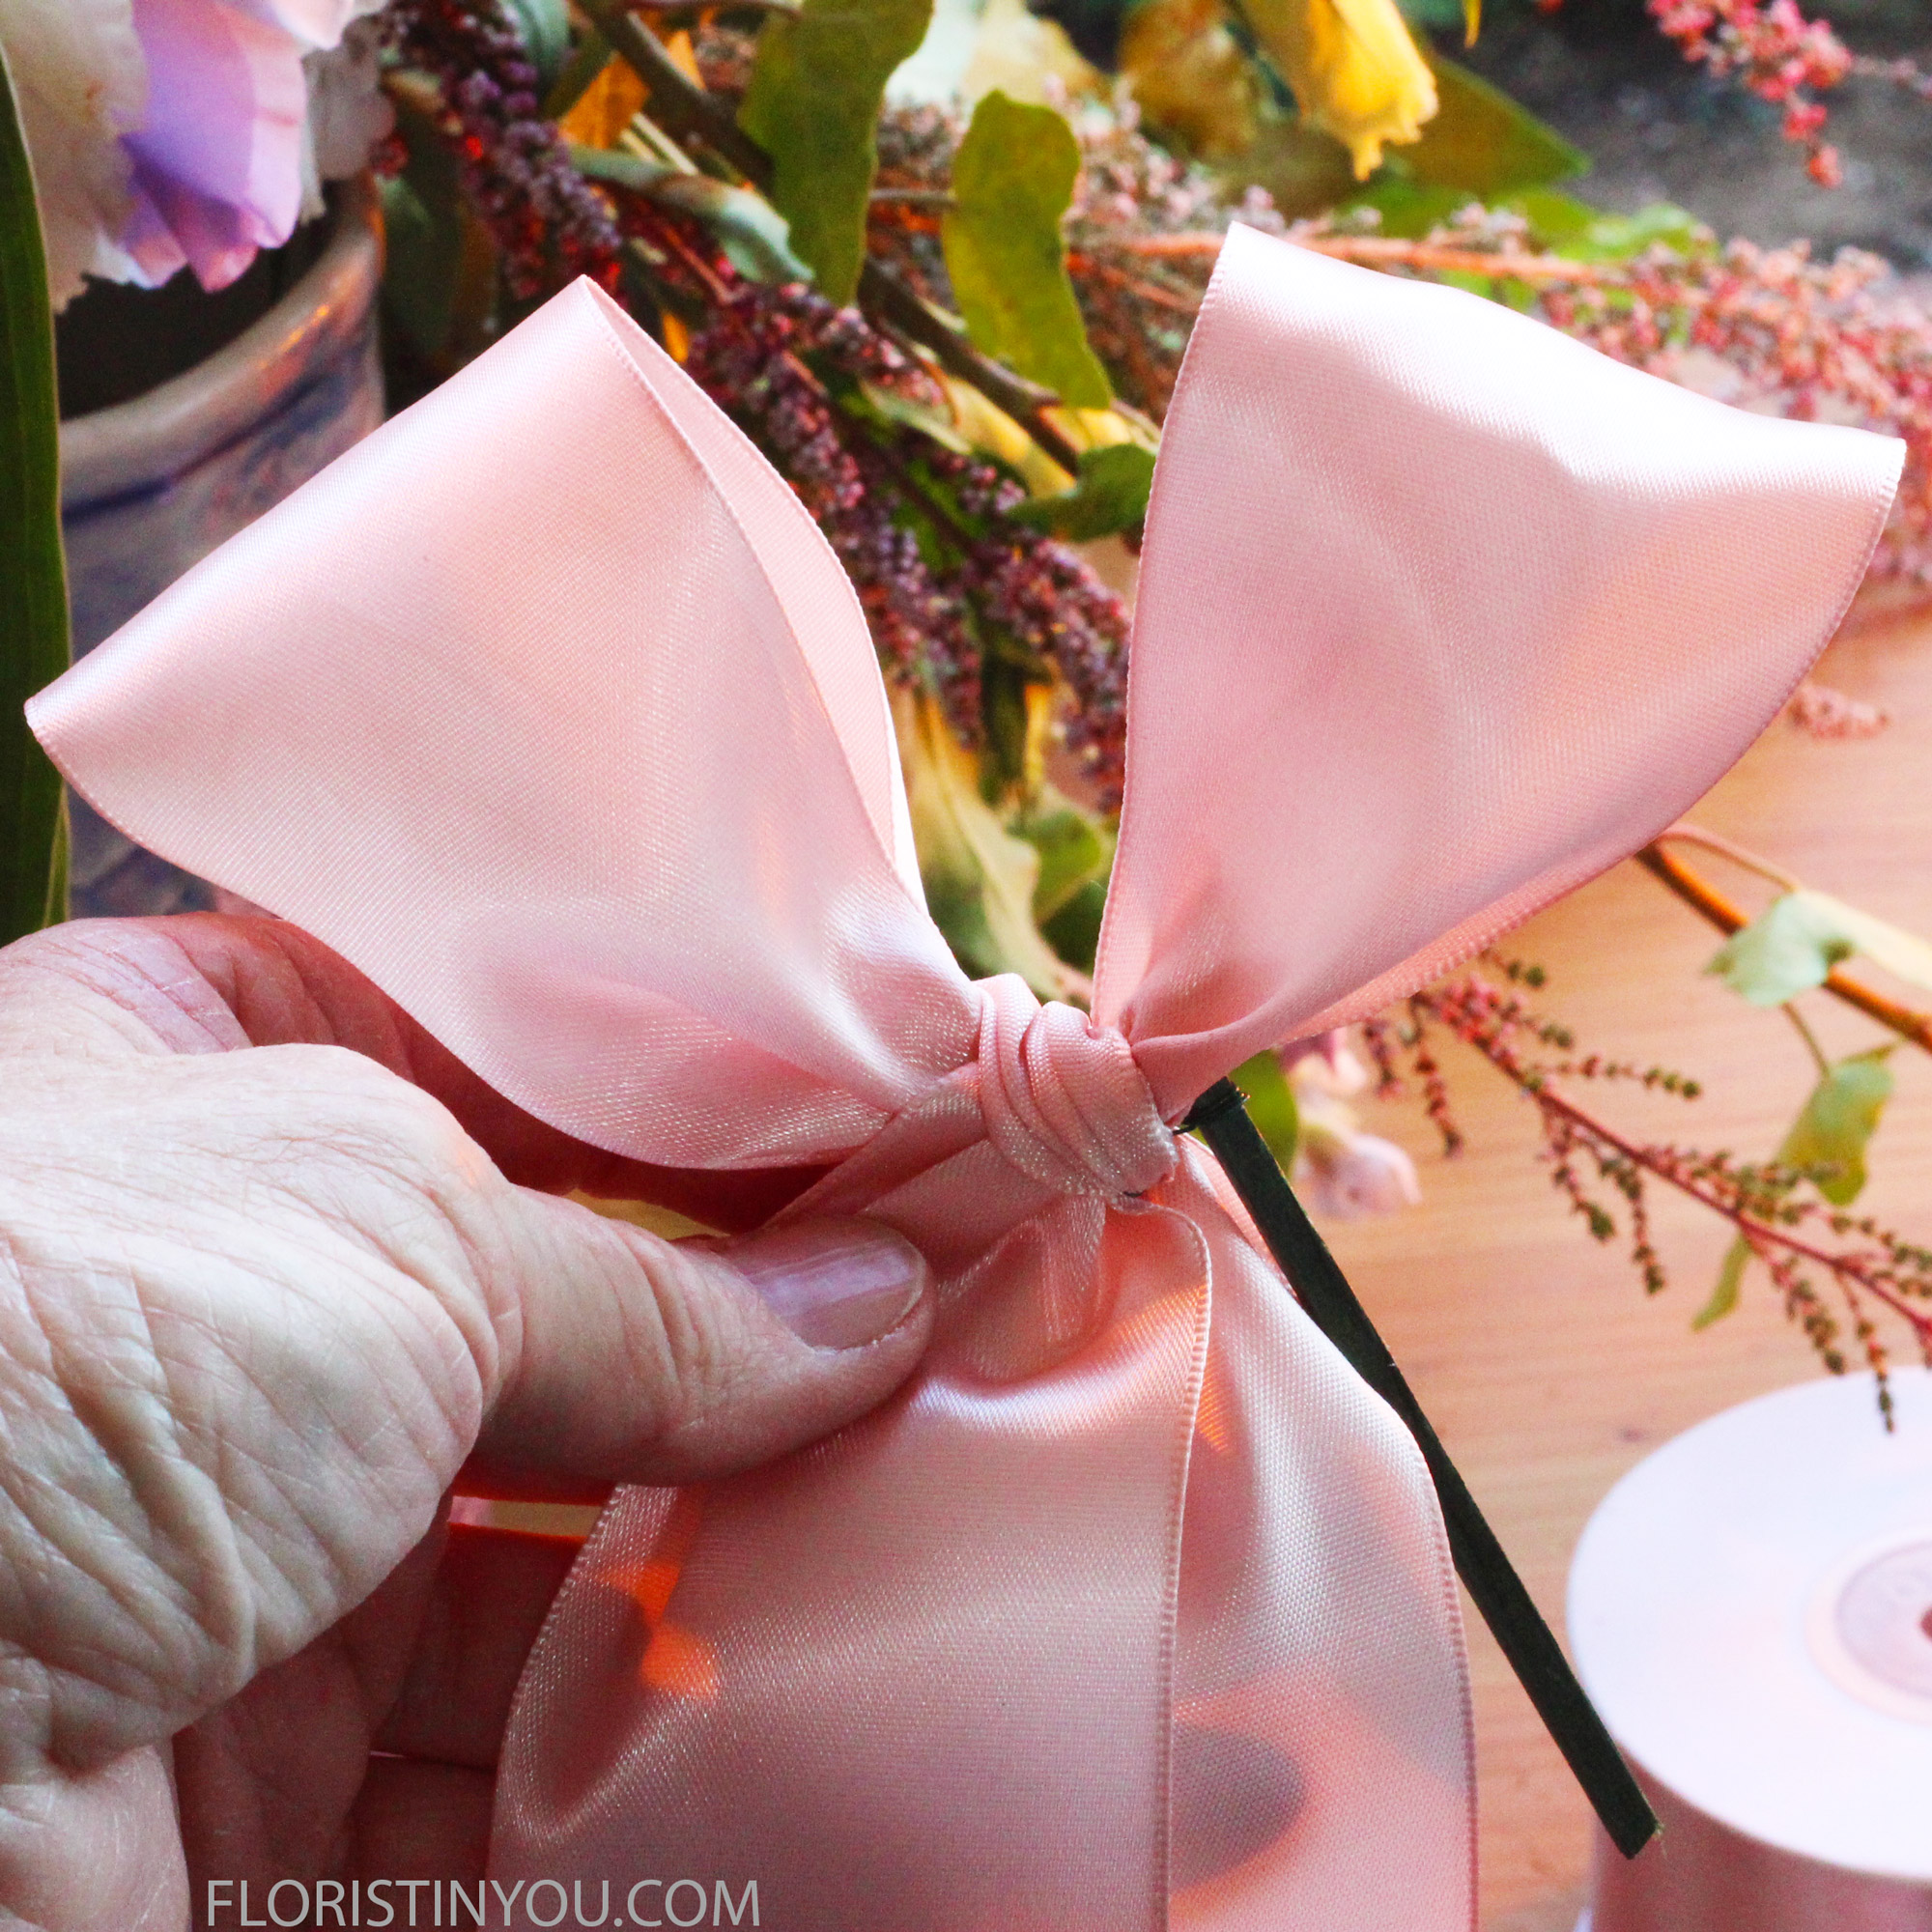 Tie a bow. Cut ends at 45 degrees. Insert pick into bouquet holder.